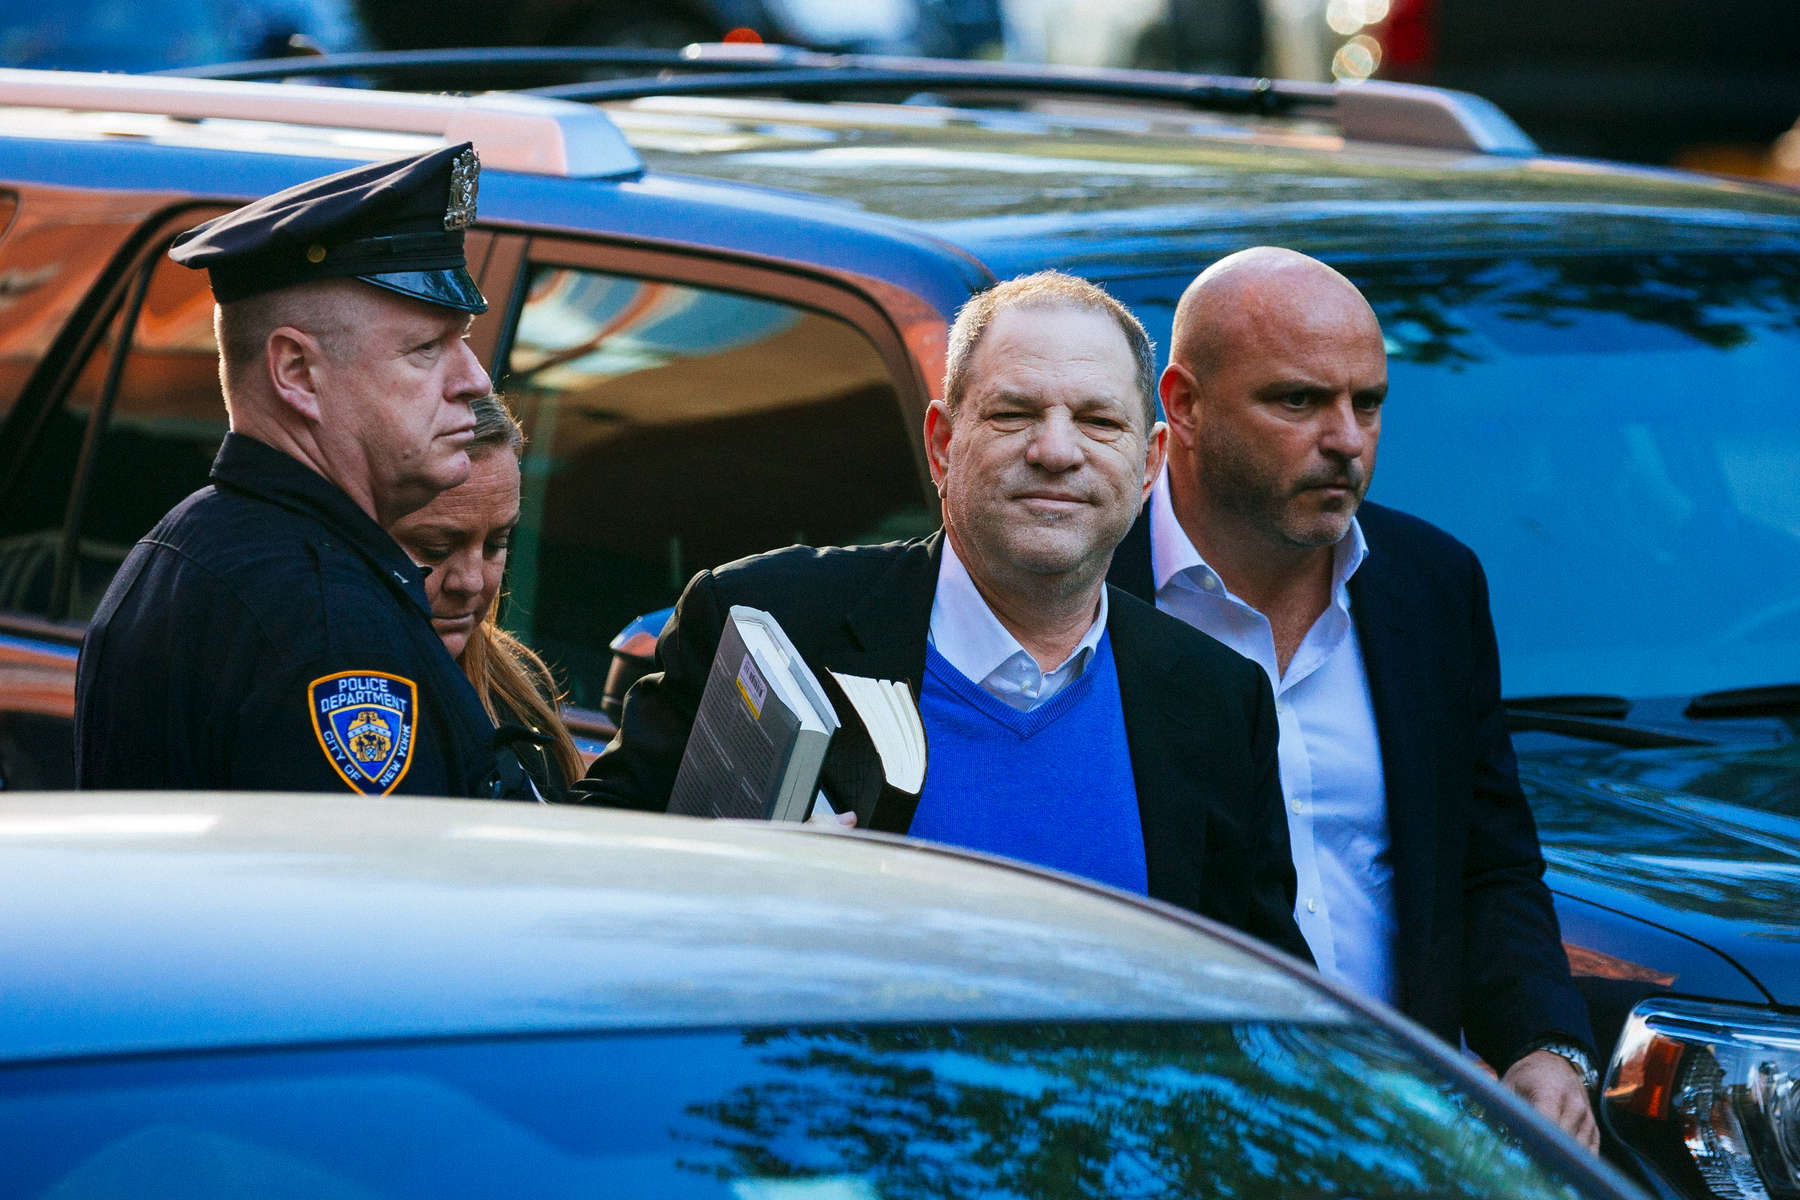 NEW YORK, NY - MAY 25: Harvey Weinstein arrives to face rape charges at the 1st Precinct on May 25, 2018 in New York City. (Photo by Kevin Hagen/Getty Images)